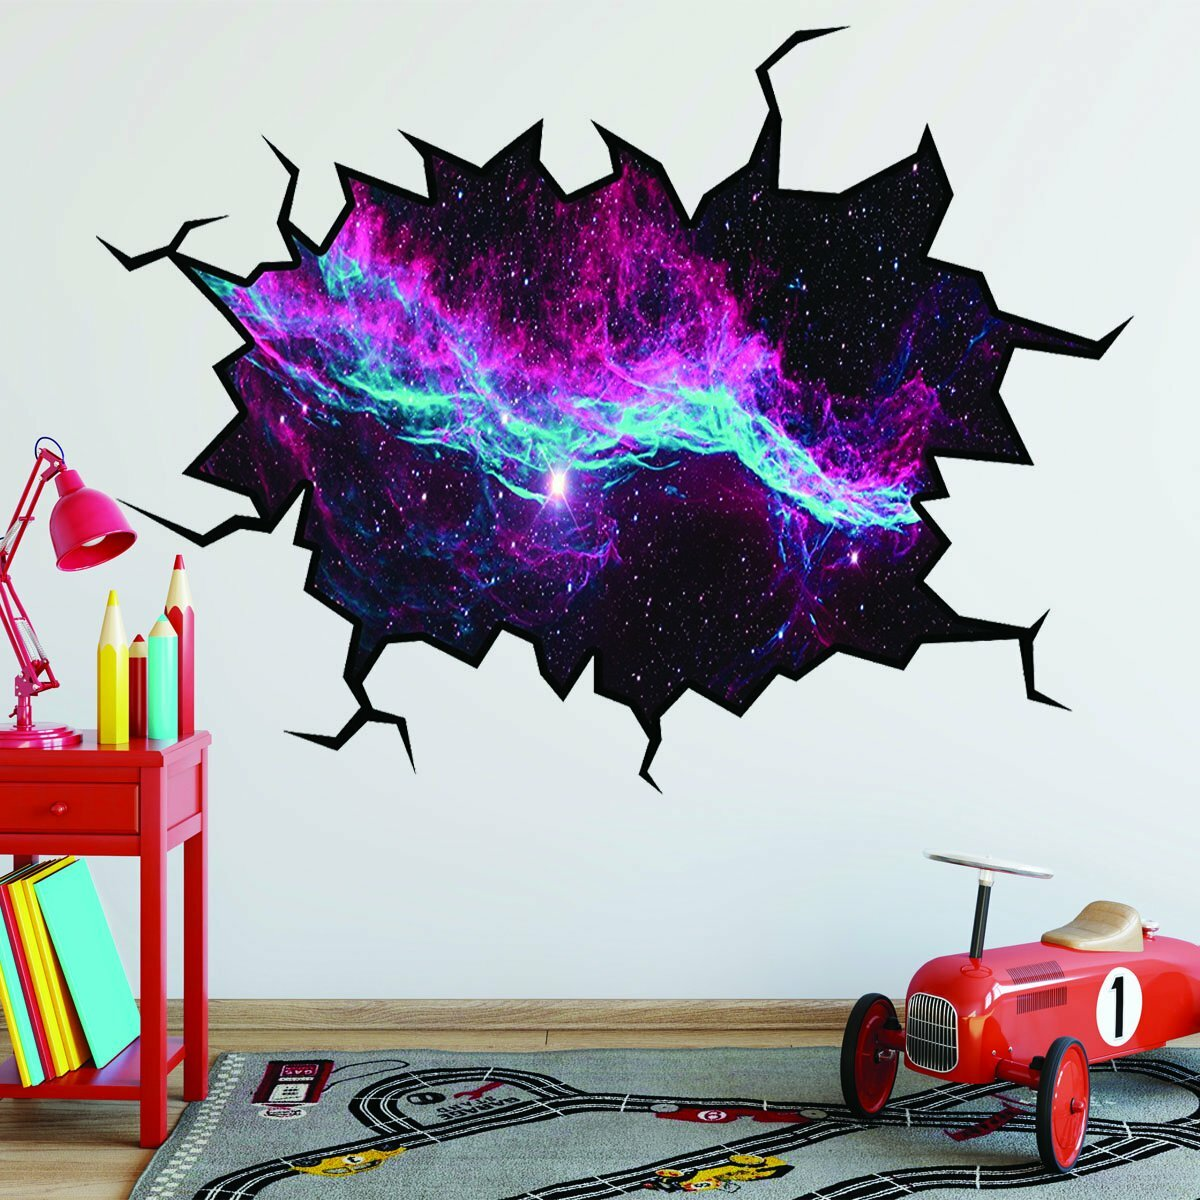 East Urban Home Outer Space Universe Hole Wall Decal Wayfair